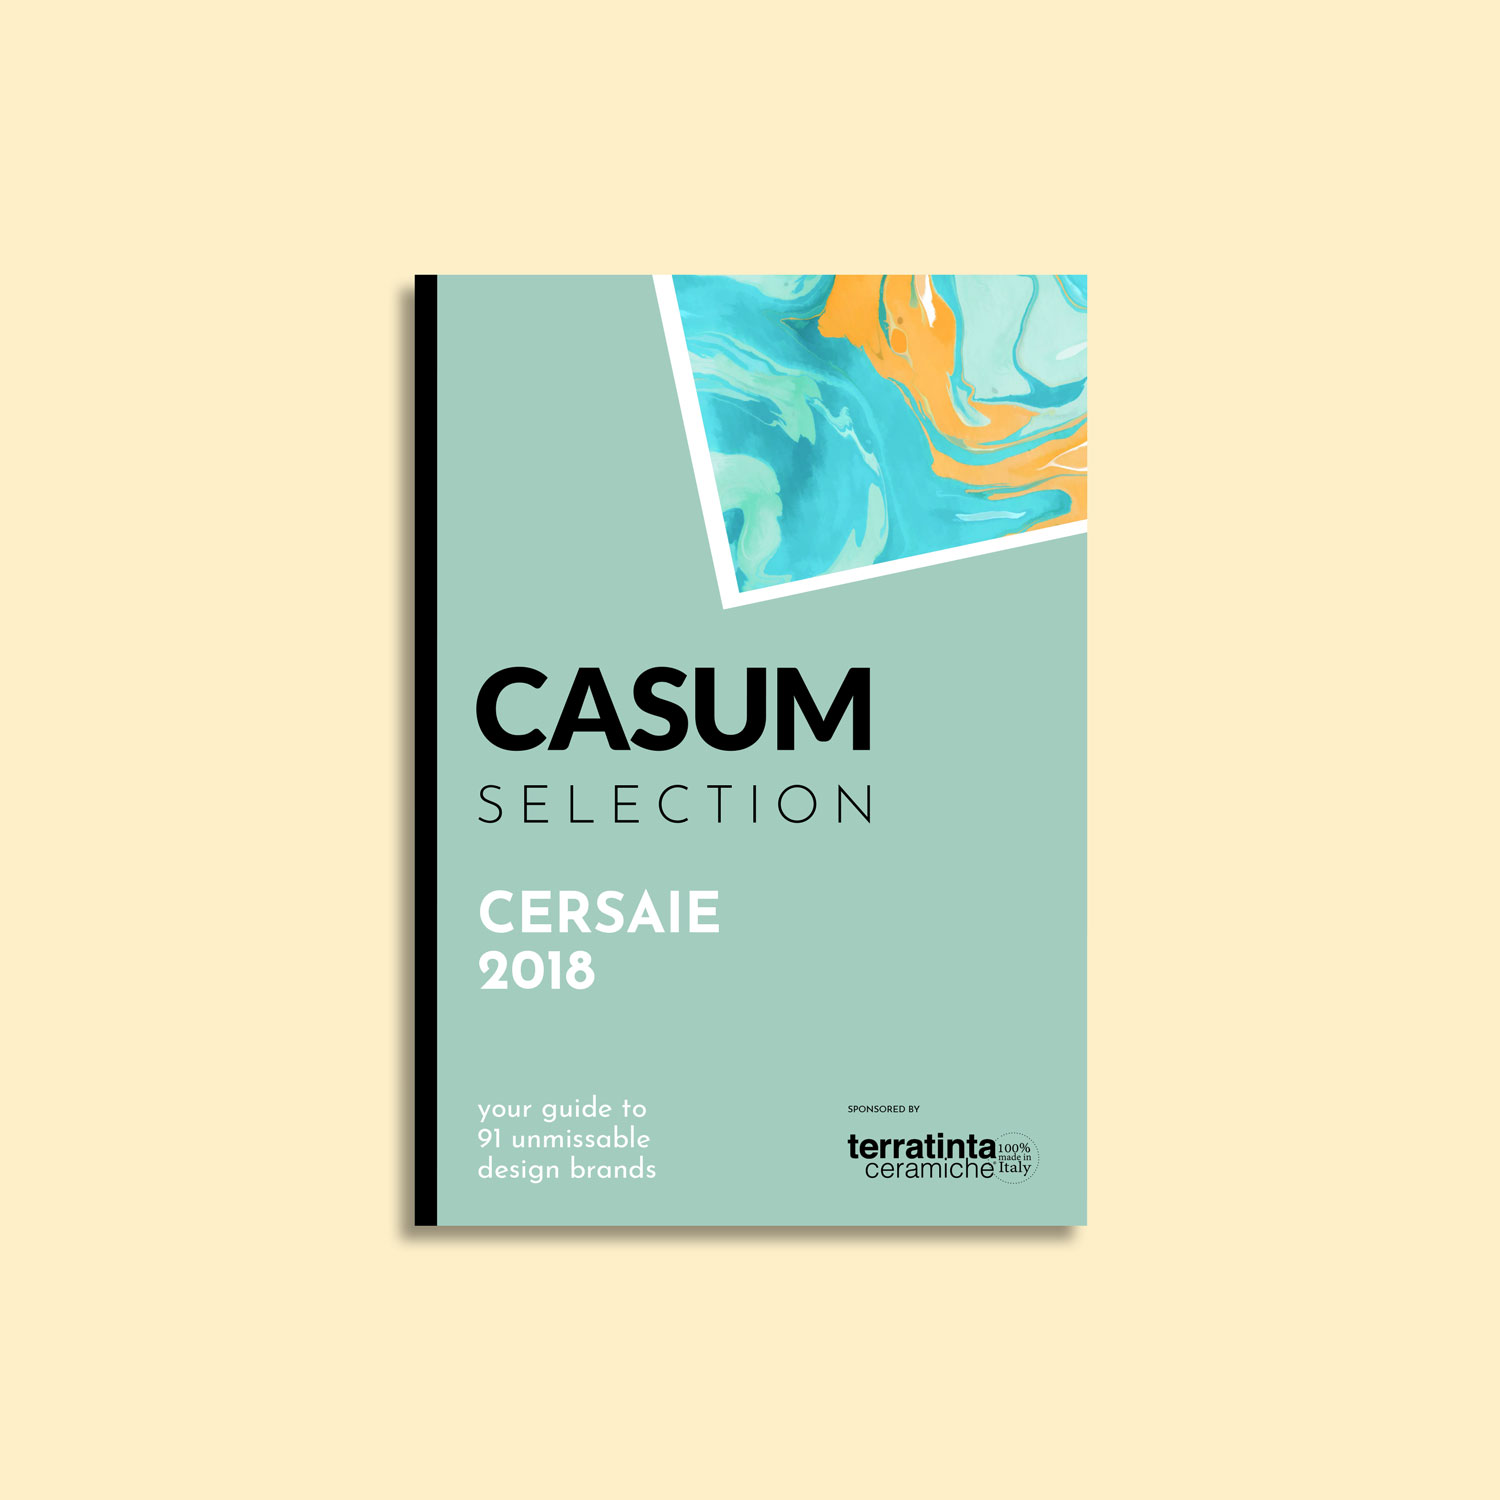 Casum timeline. Cover of the first edition of Casum Selection